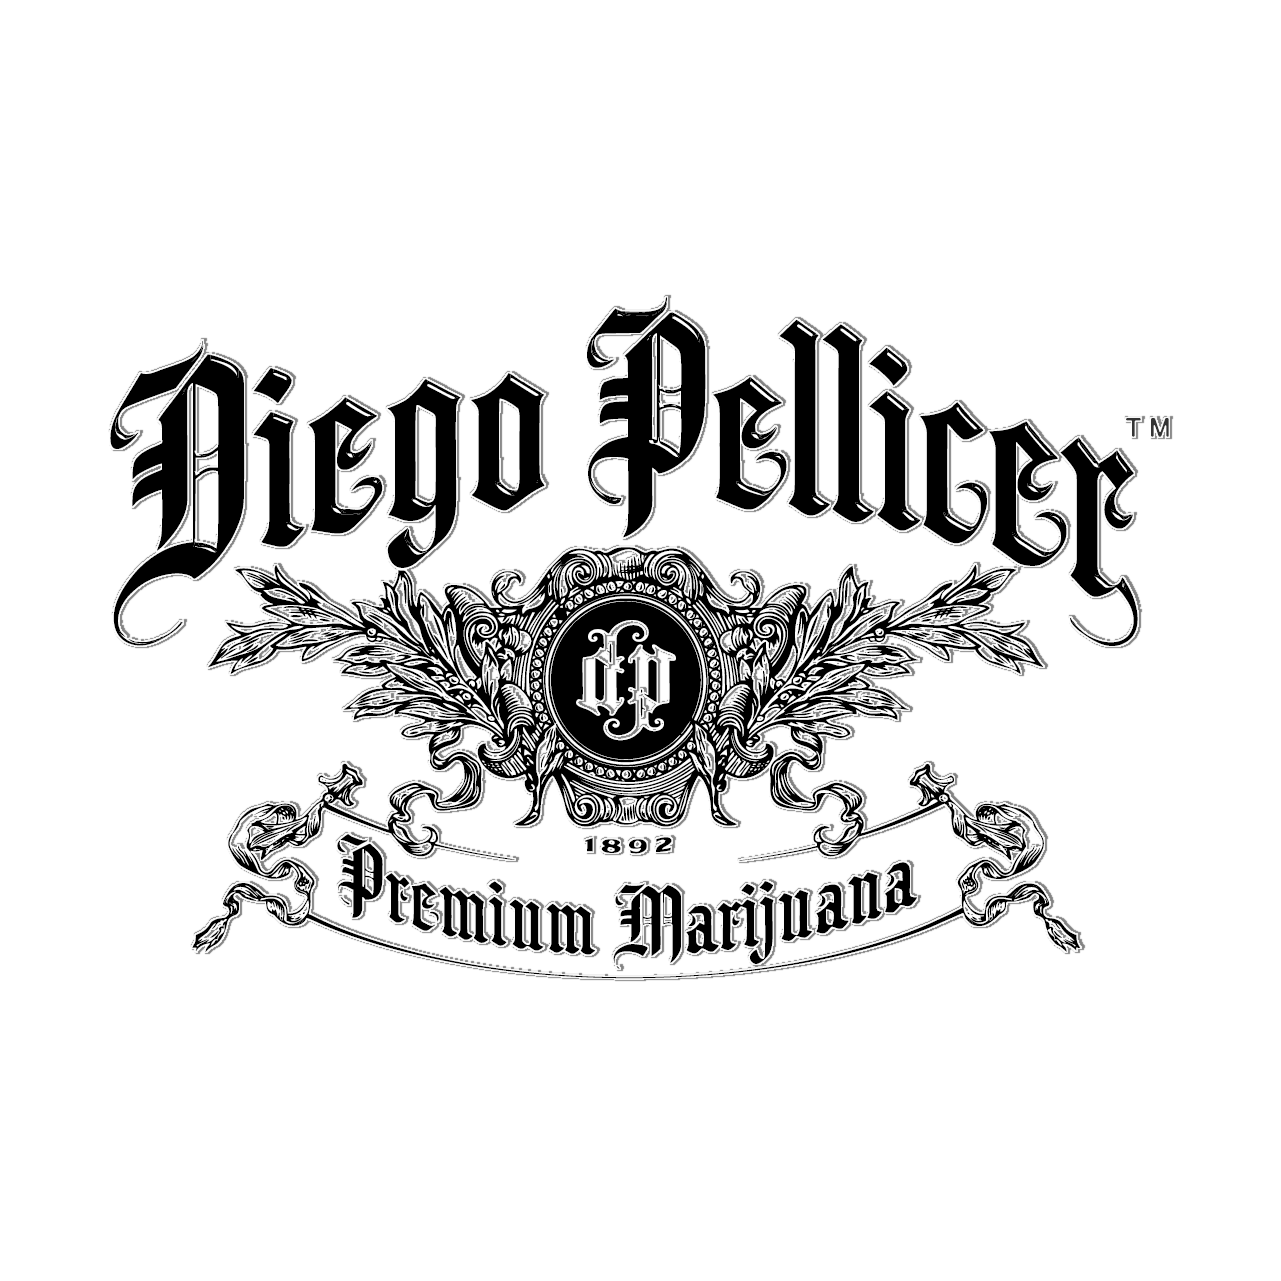 Diego Pellicer Recreational and Medical Cannabis Dispensary